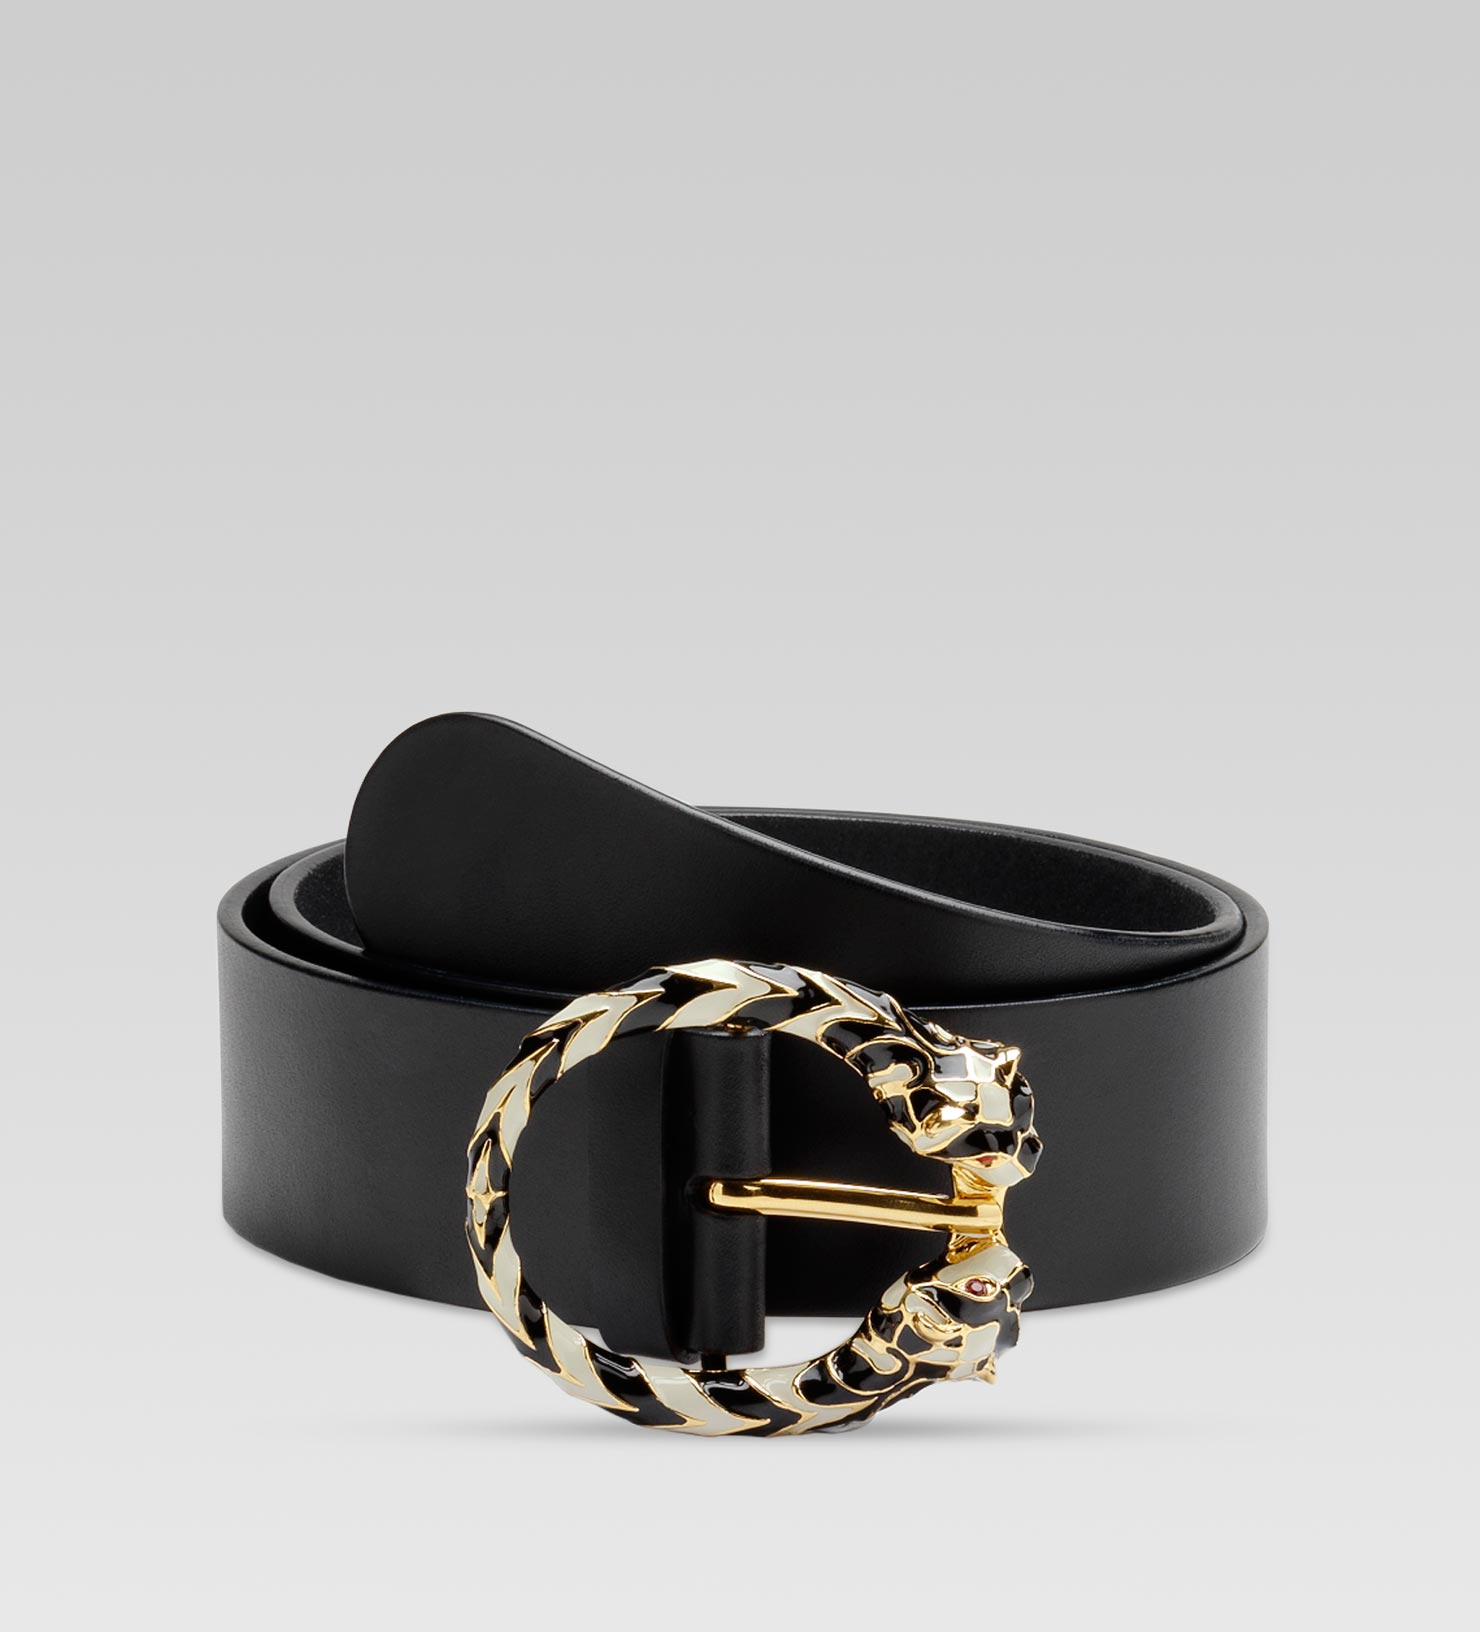 79d36e1b3f2 Gucci Belt with Two Enameled Tiger Heads Buckle with Swarovski ...